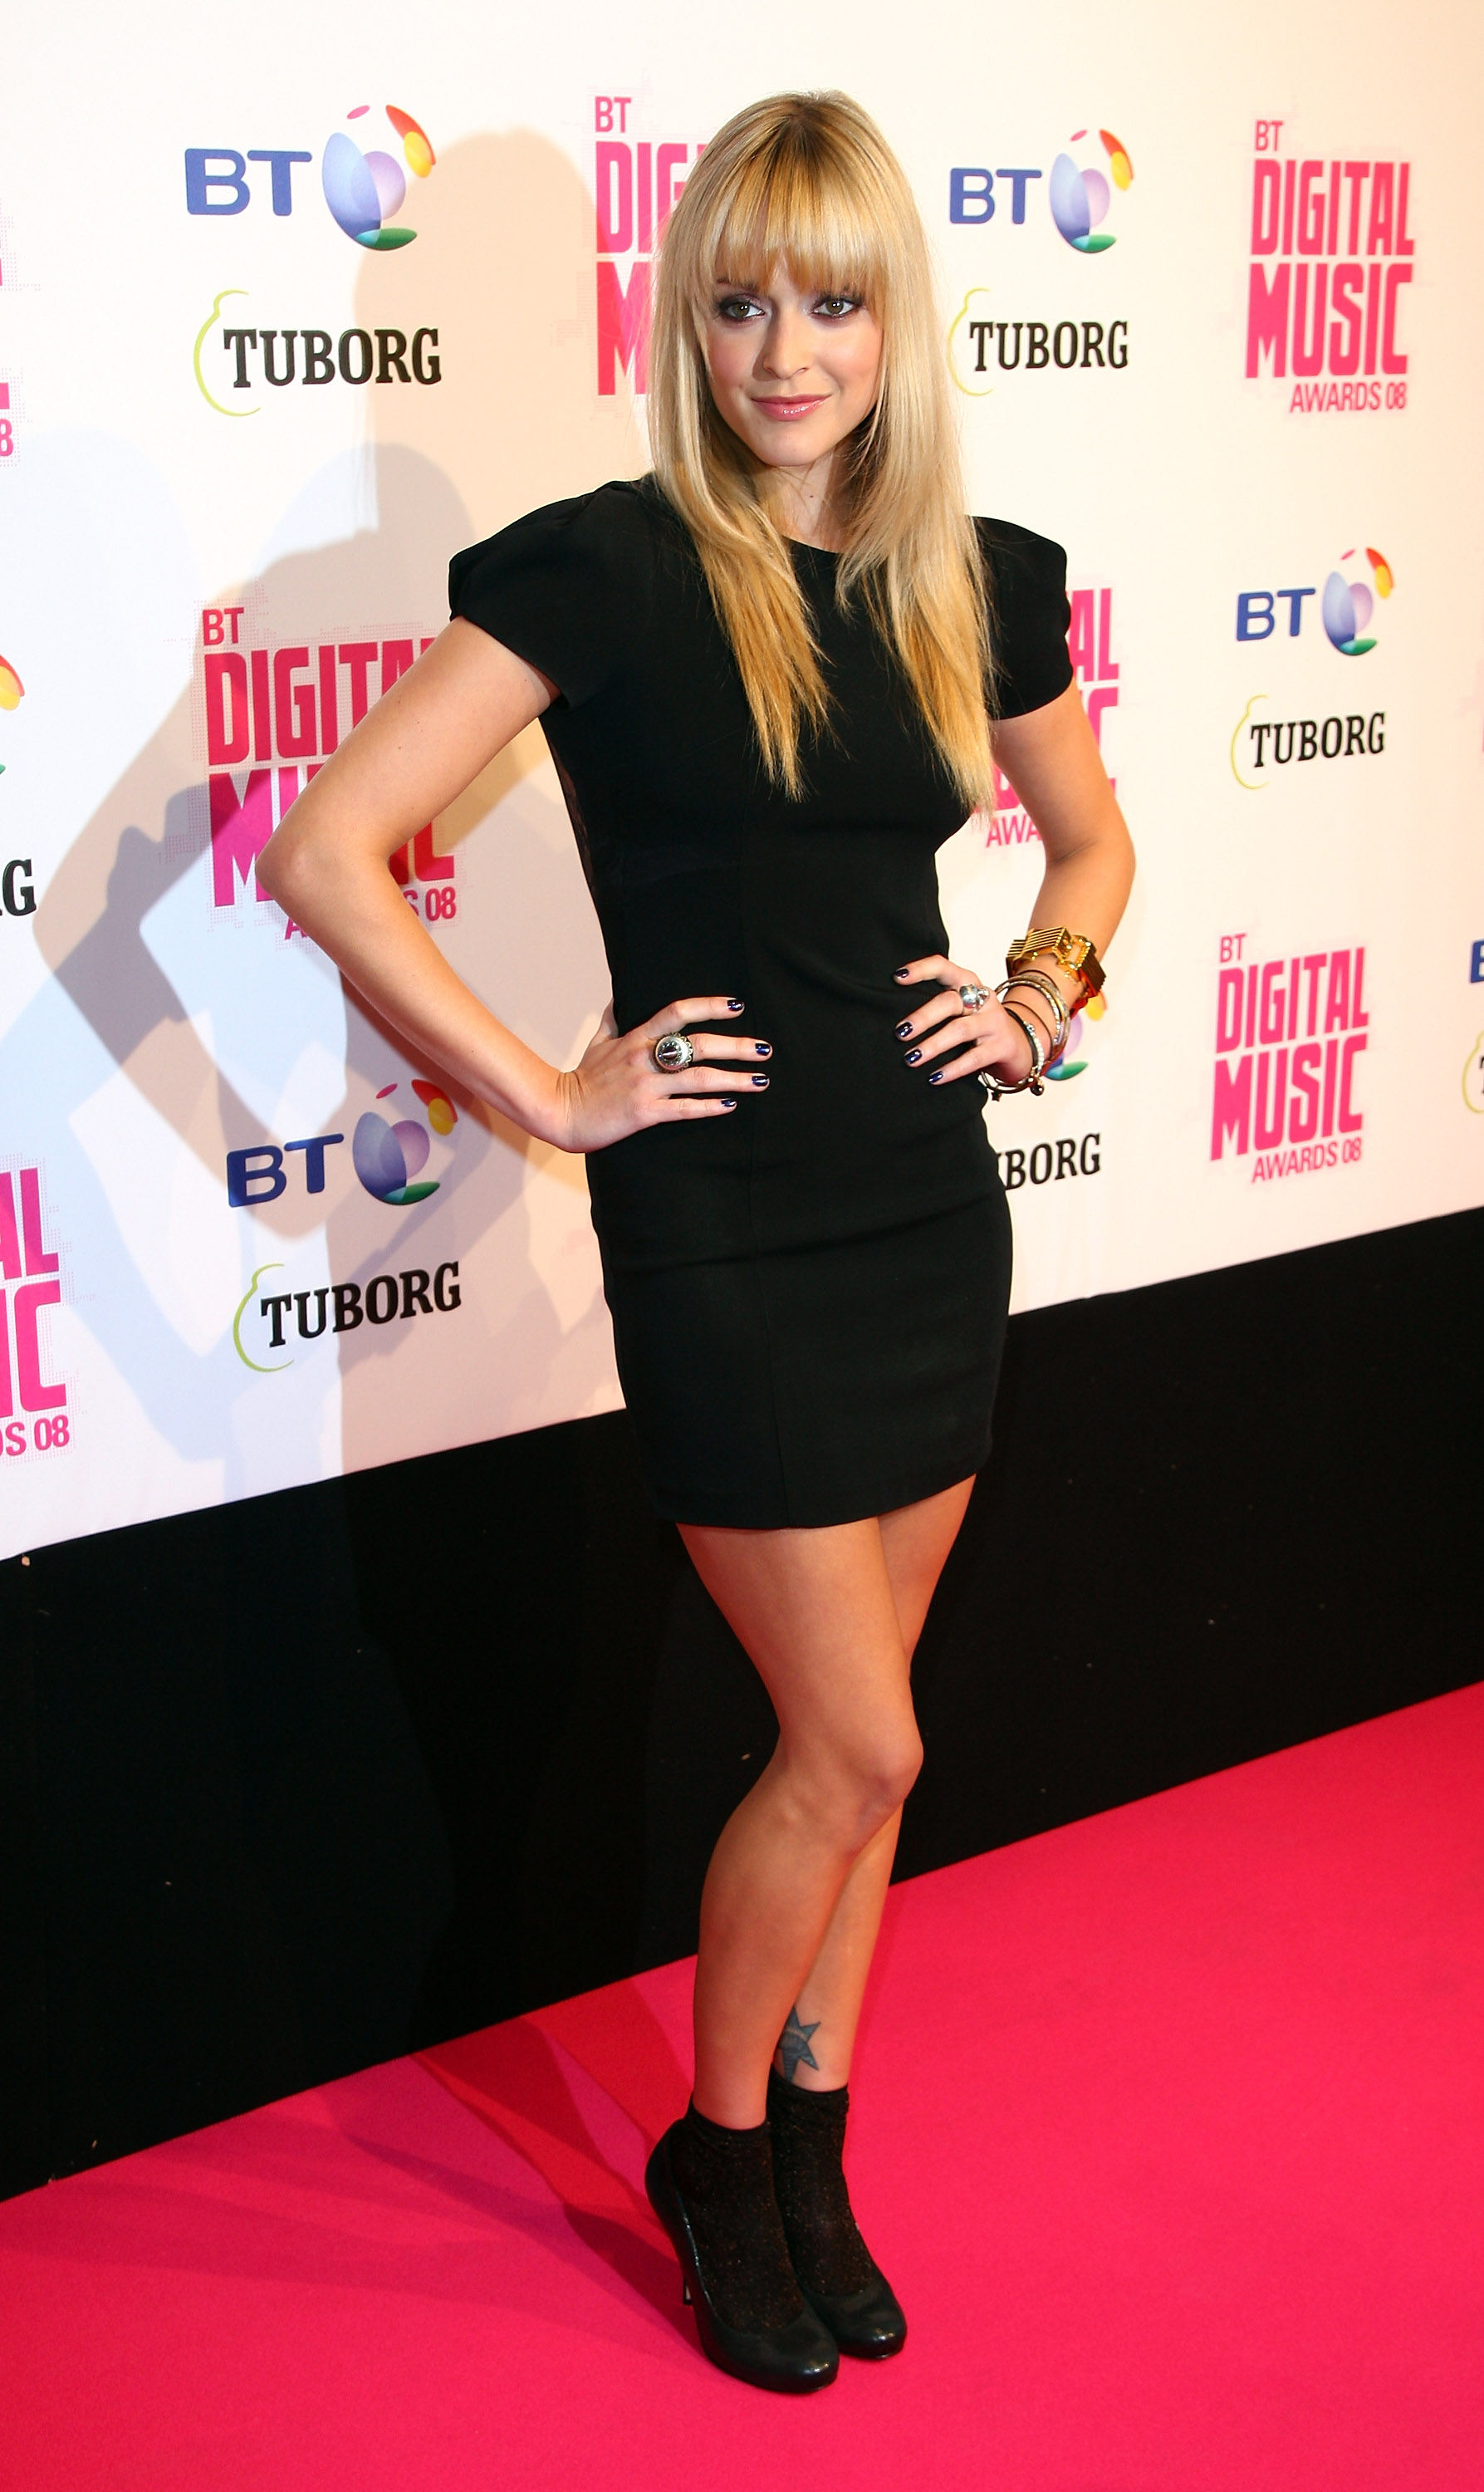 02221_Celebutopia-Fearne_Cotton_arrives_at_the_BT_Digital_Music_Awards_2008-02_122_1161lo.jpg